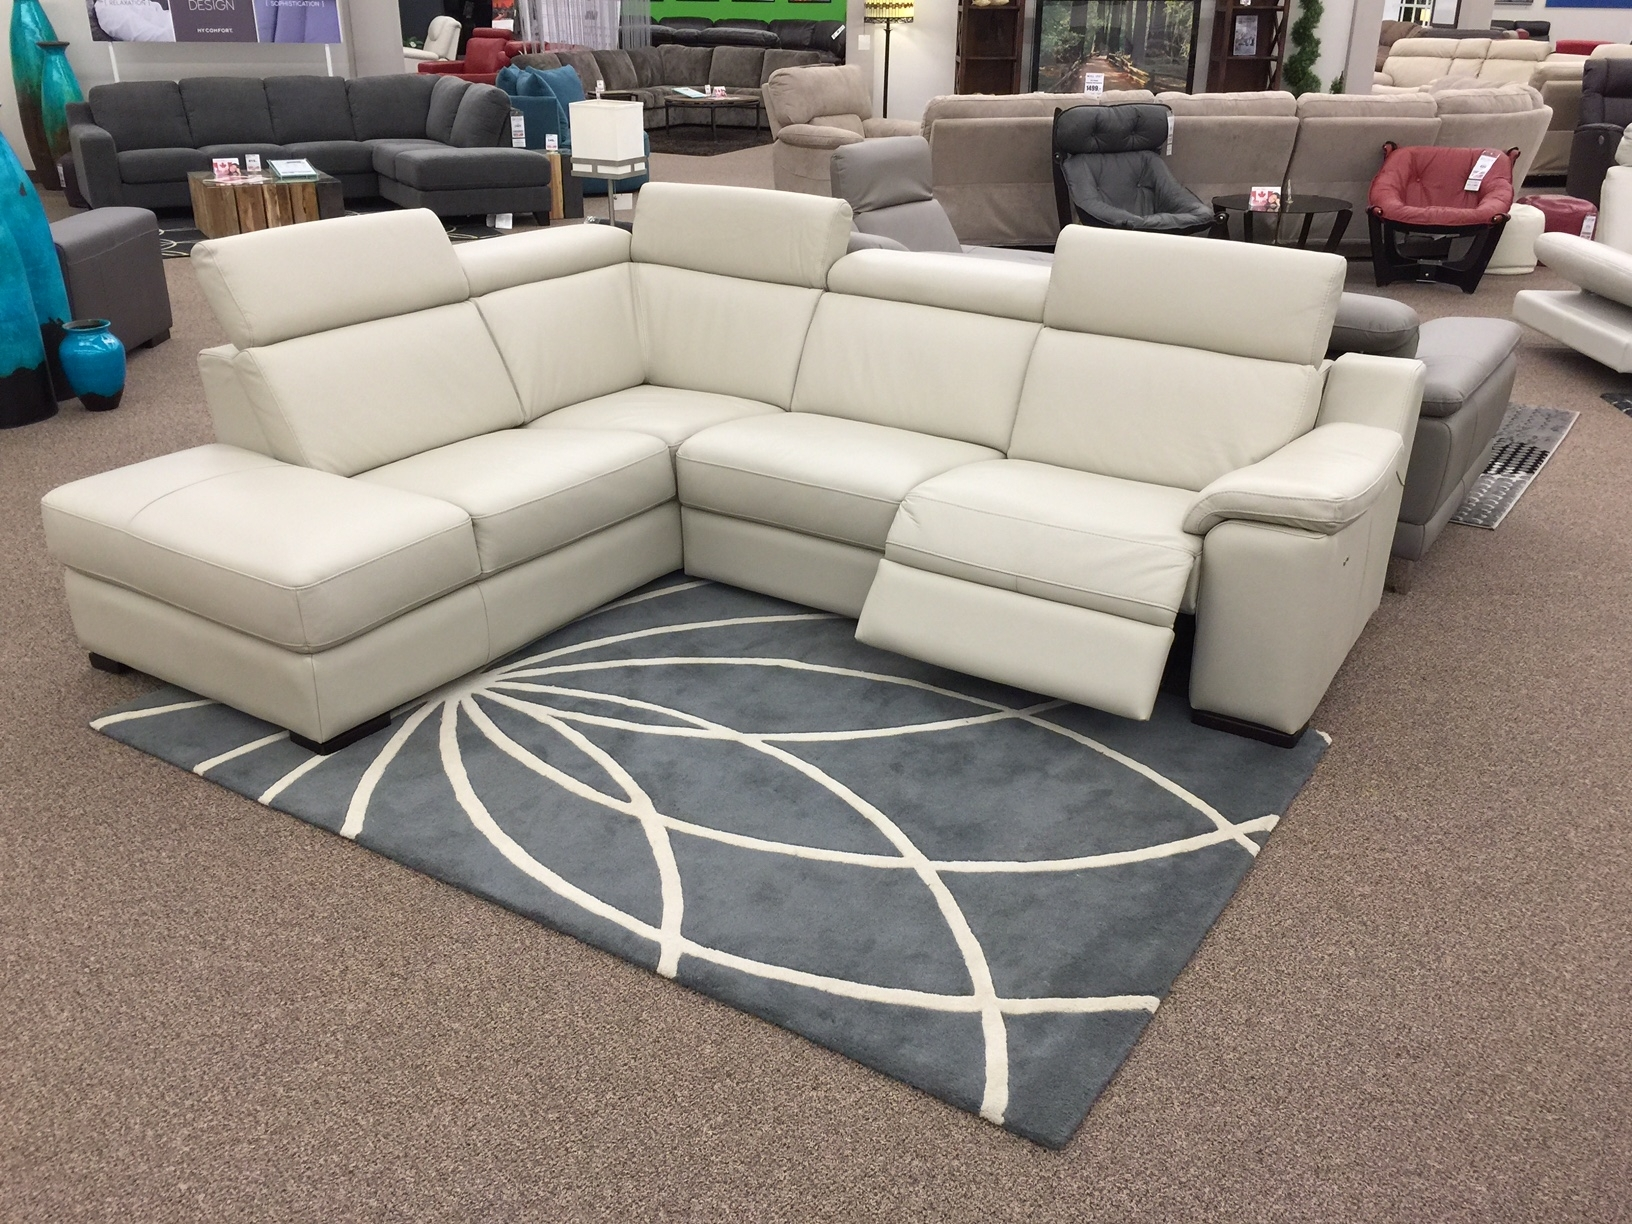 The Ashlynn Sectional Just Arrived At Sofa Land! This 100% Leather For Sectional Sofas In Stock (View 5 of 10)